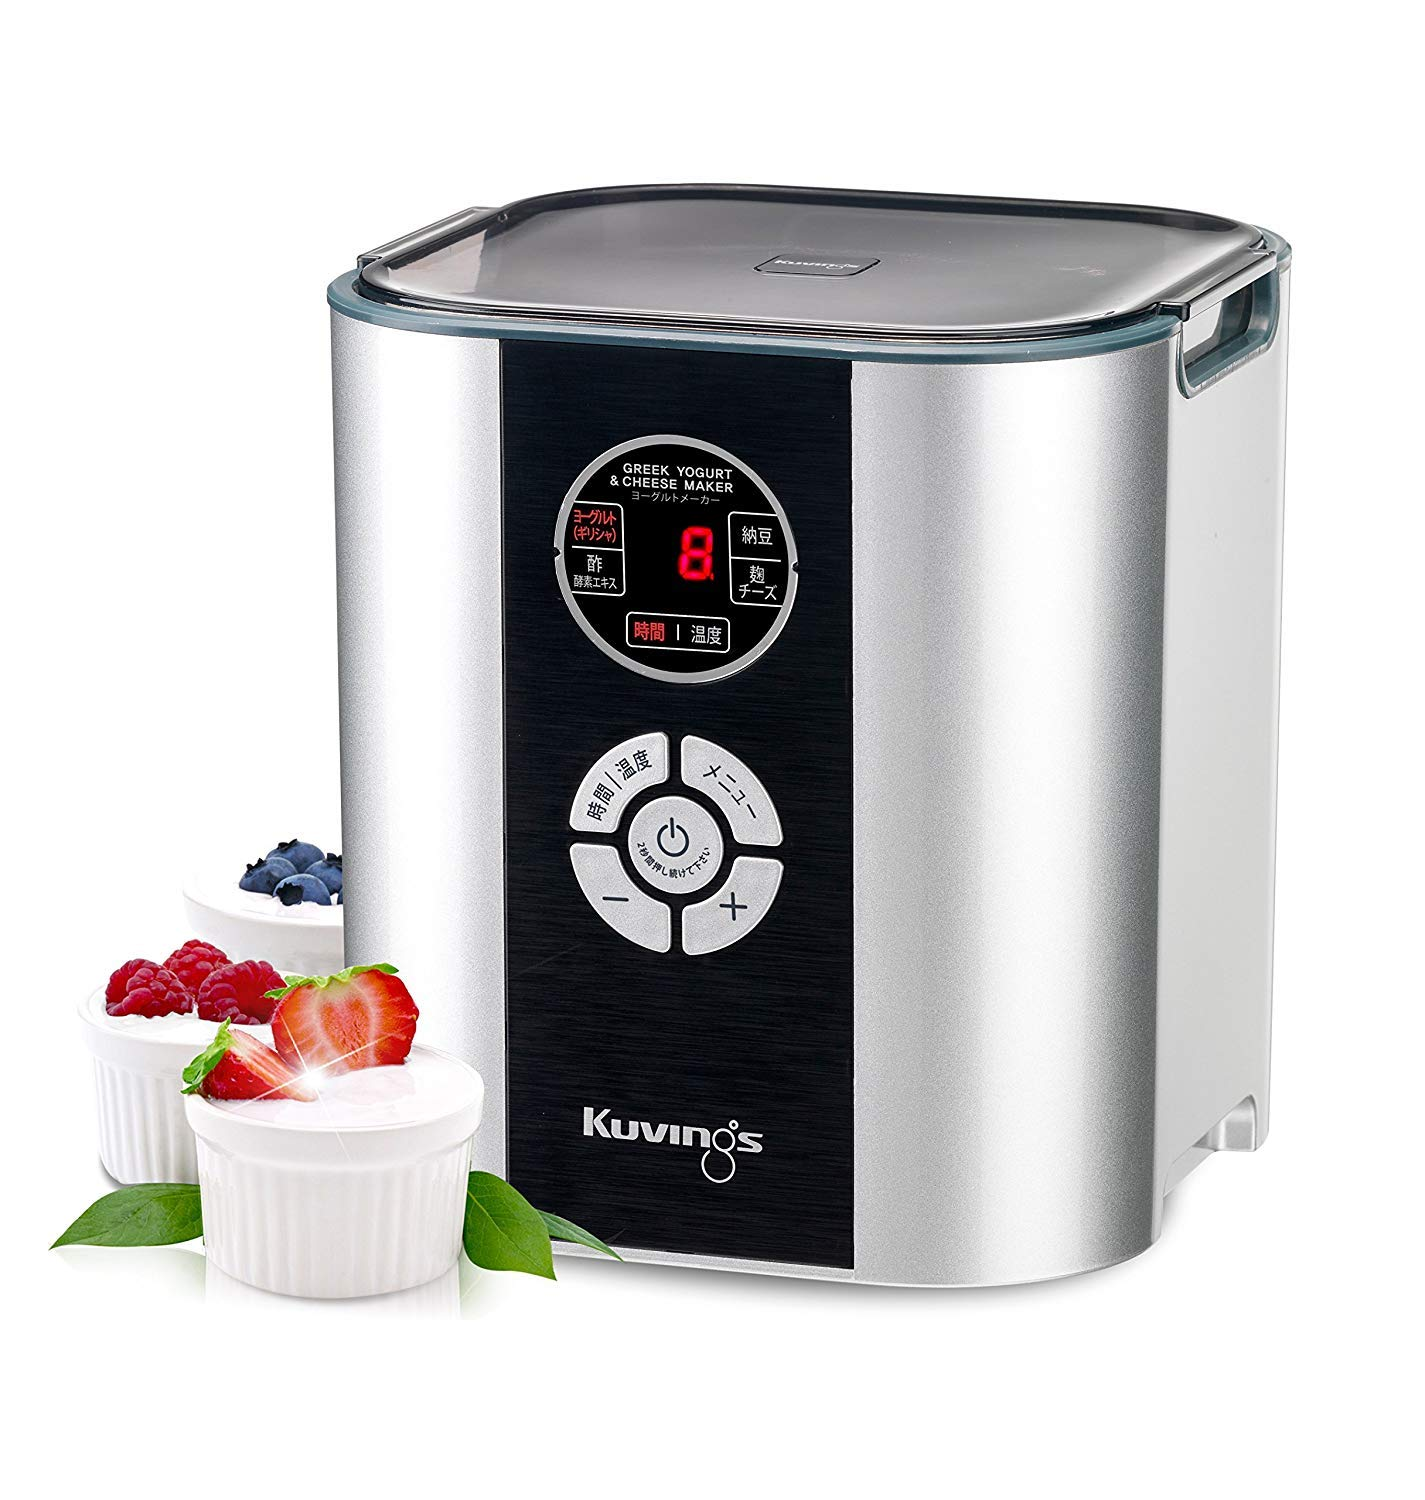 Kuvings yogurt and cheese maker KGY-713SM by Kuvings